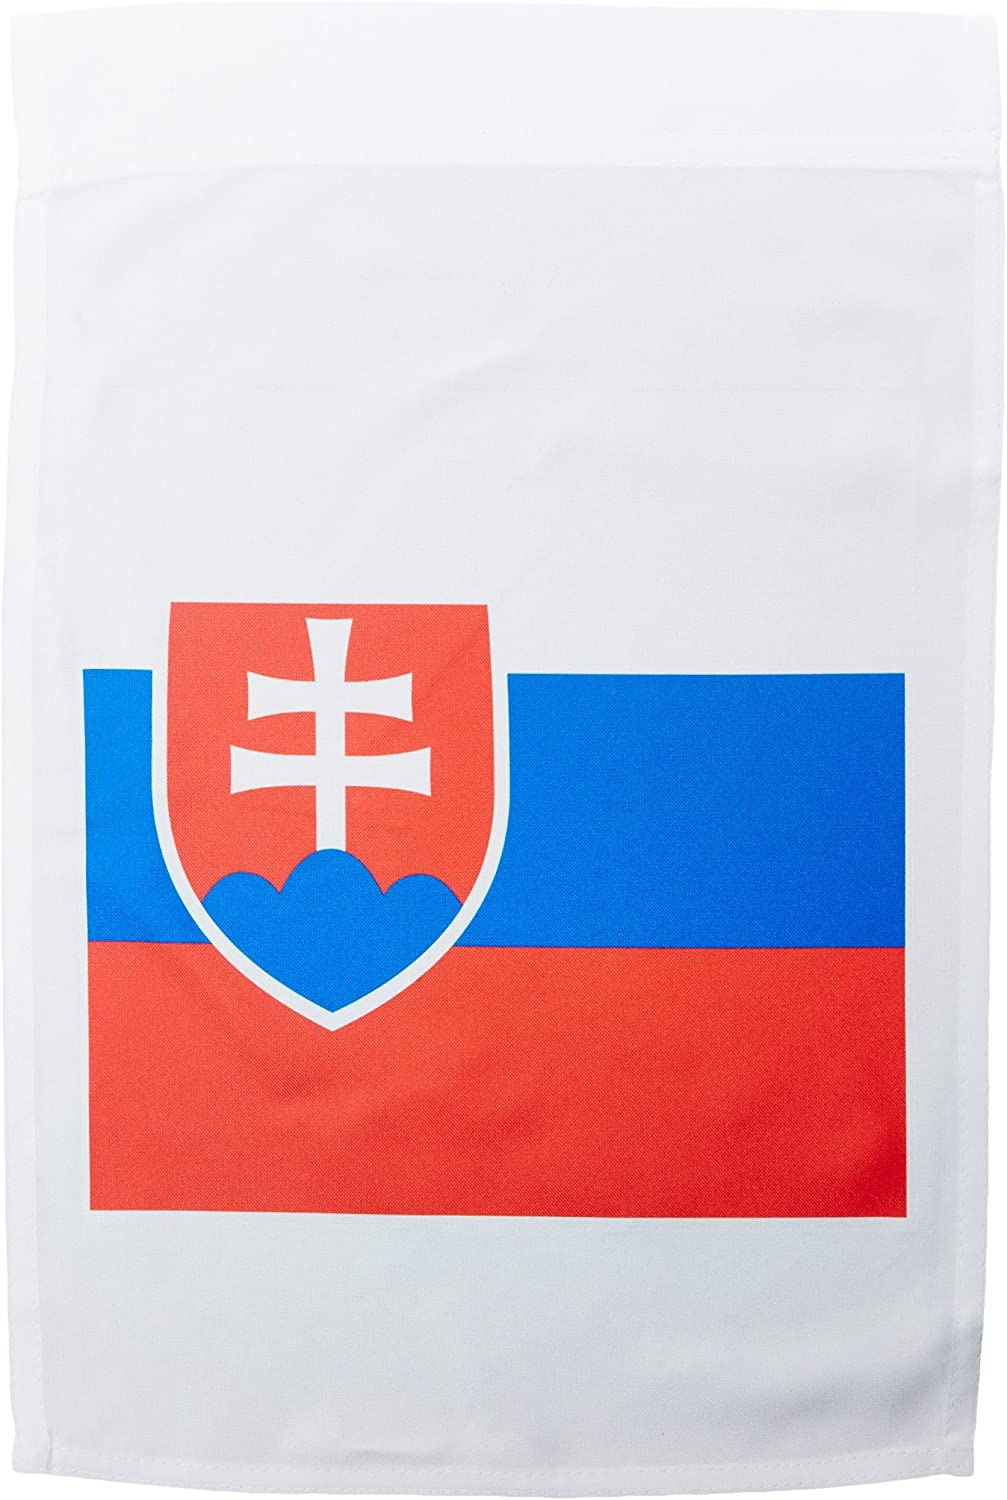 3dRose fl_158429_1 Flag of Slovakia-Slovak White Blue Red Stripes-Shield Coat of Arms Double Cross. Eastern Europe Garden Flag, 12 by 18-Inch